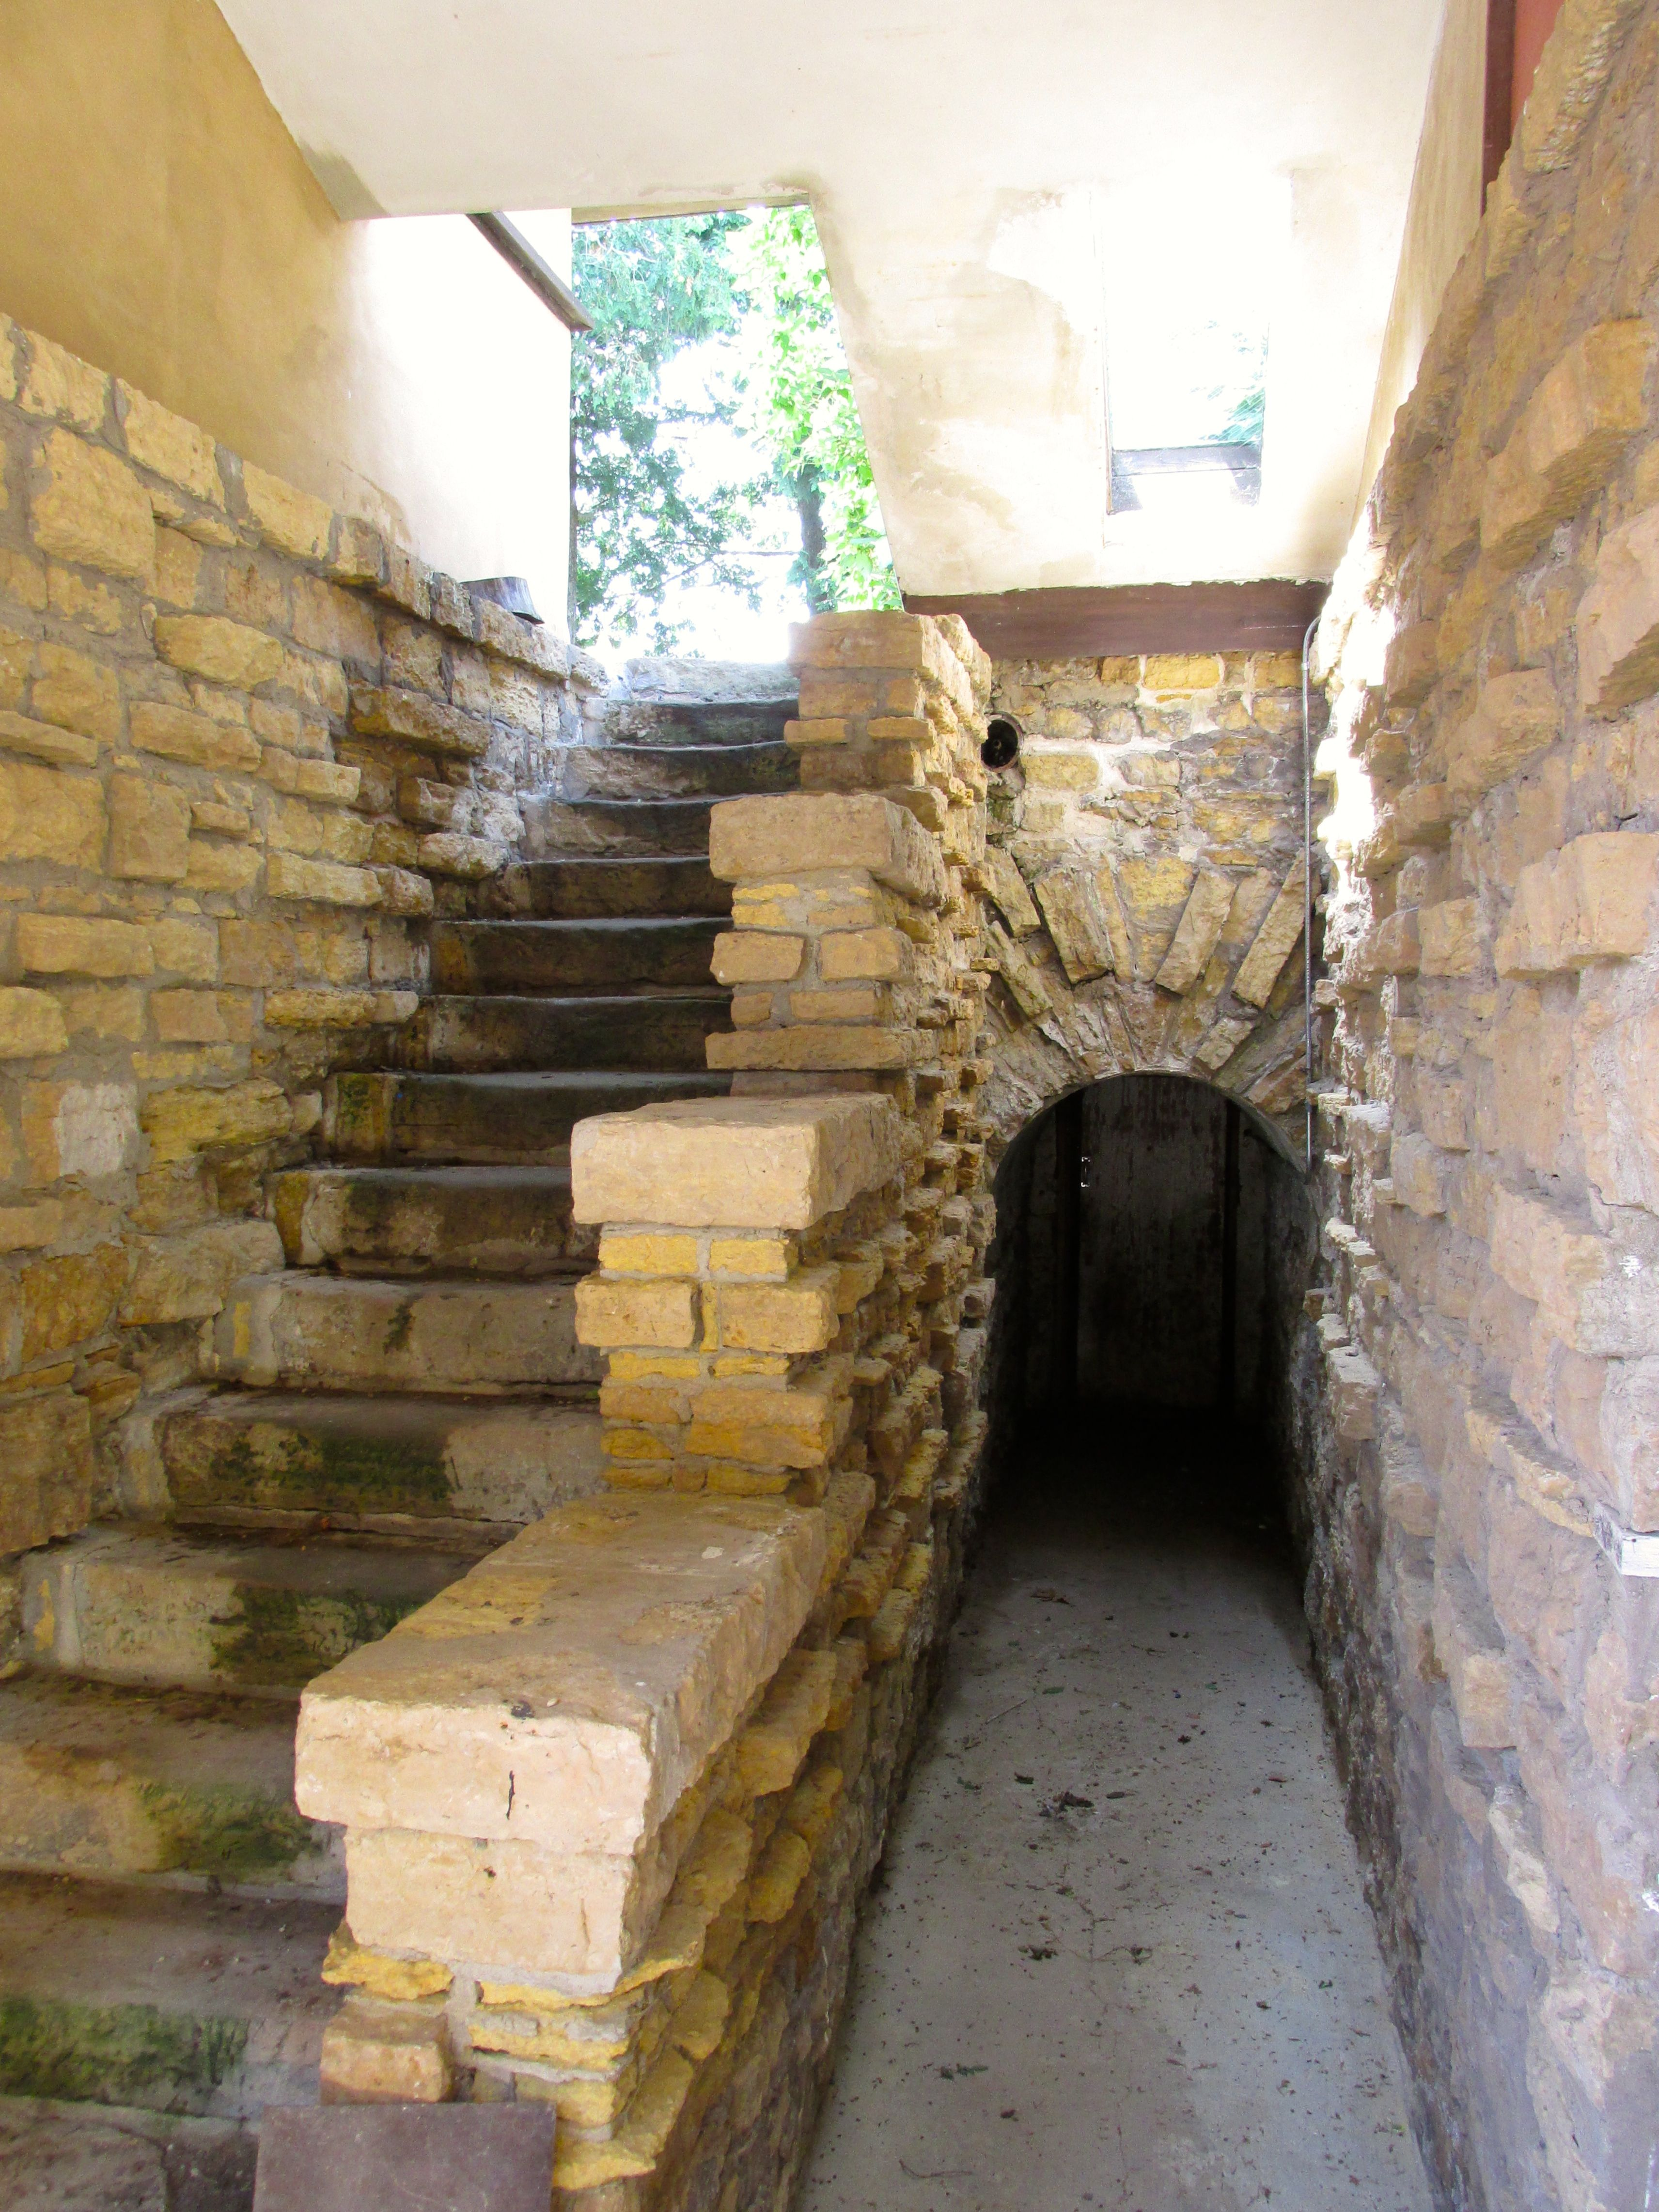 The entrance to the root cellar